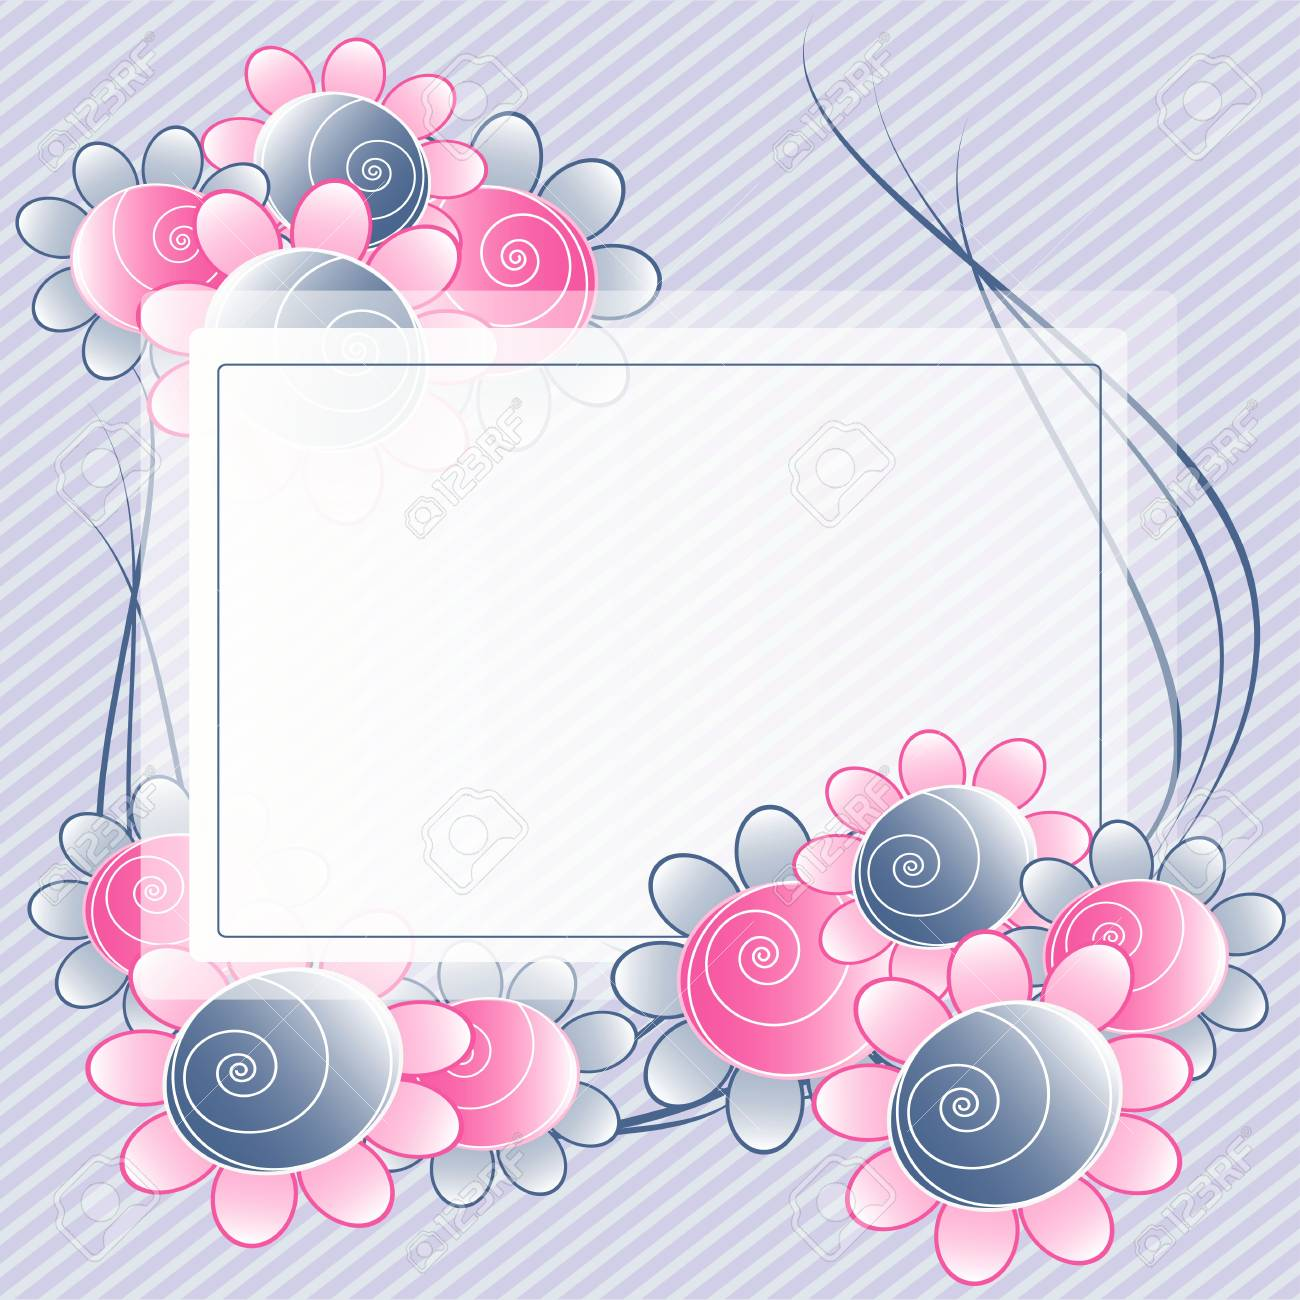 Flowers bright a background are more transparent Stock Vector - 11016253